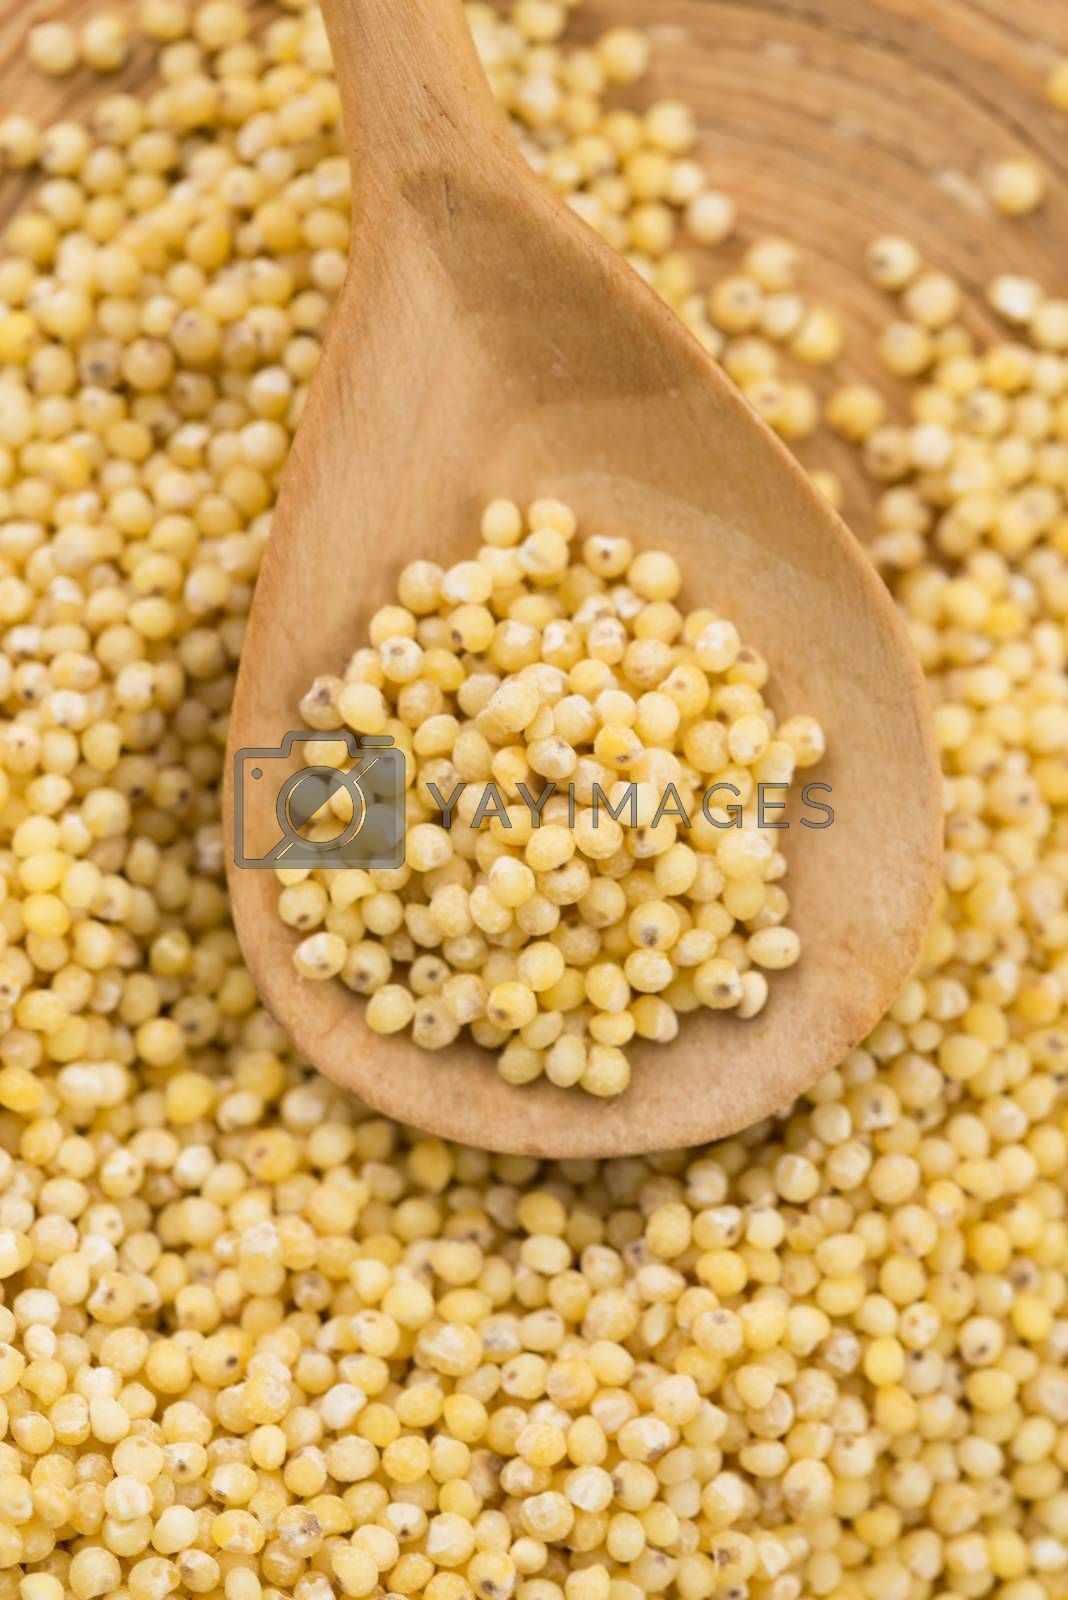 Royalty free image of millet groats  by joannawnuk